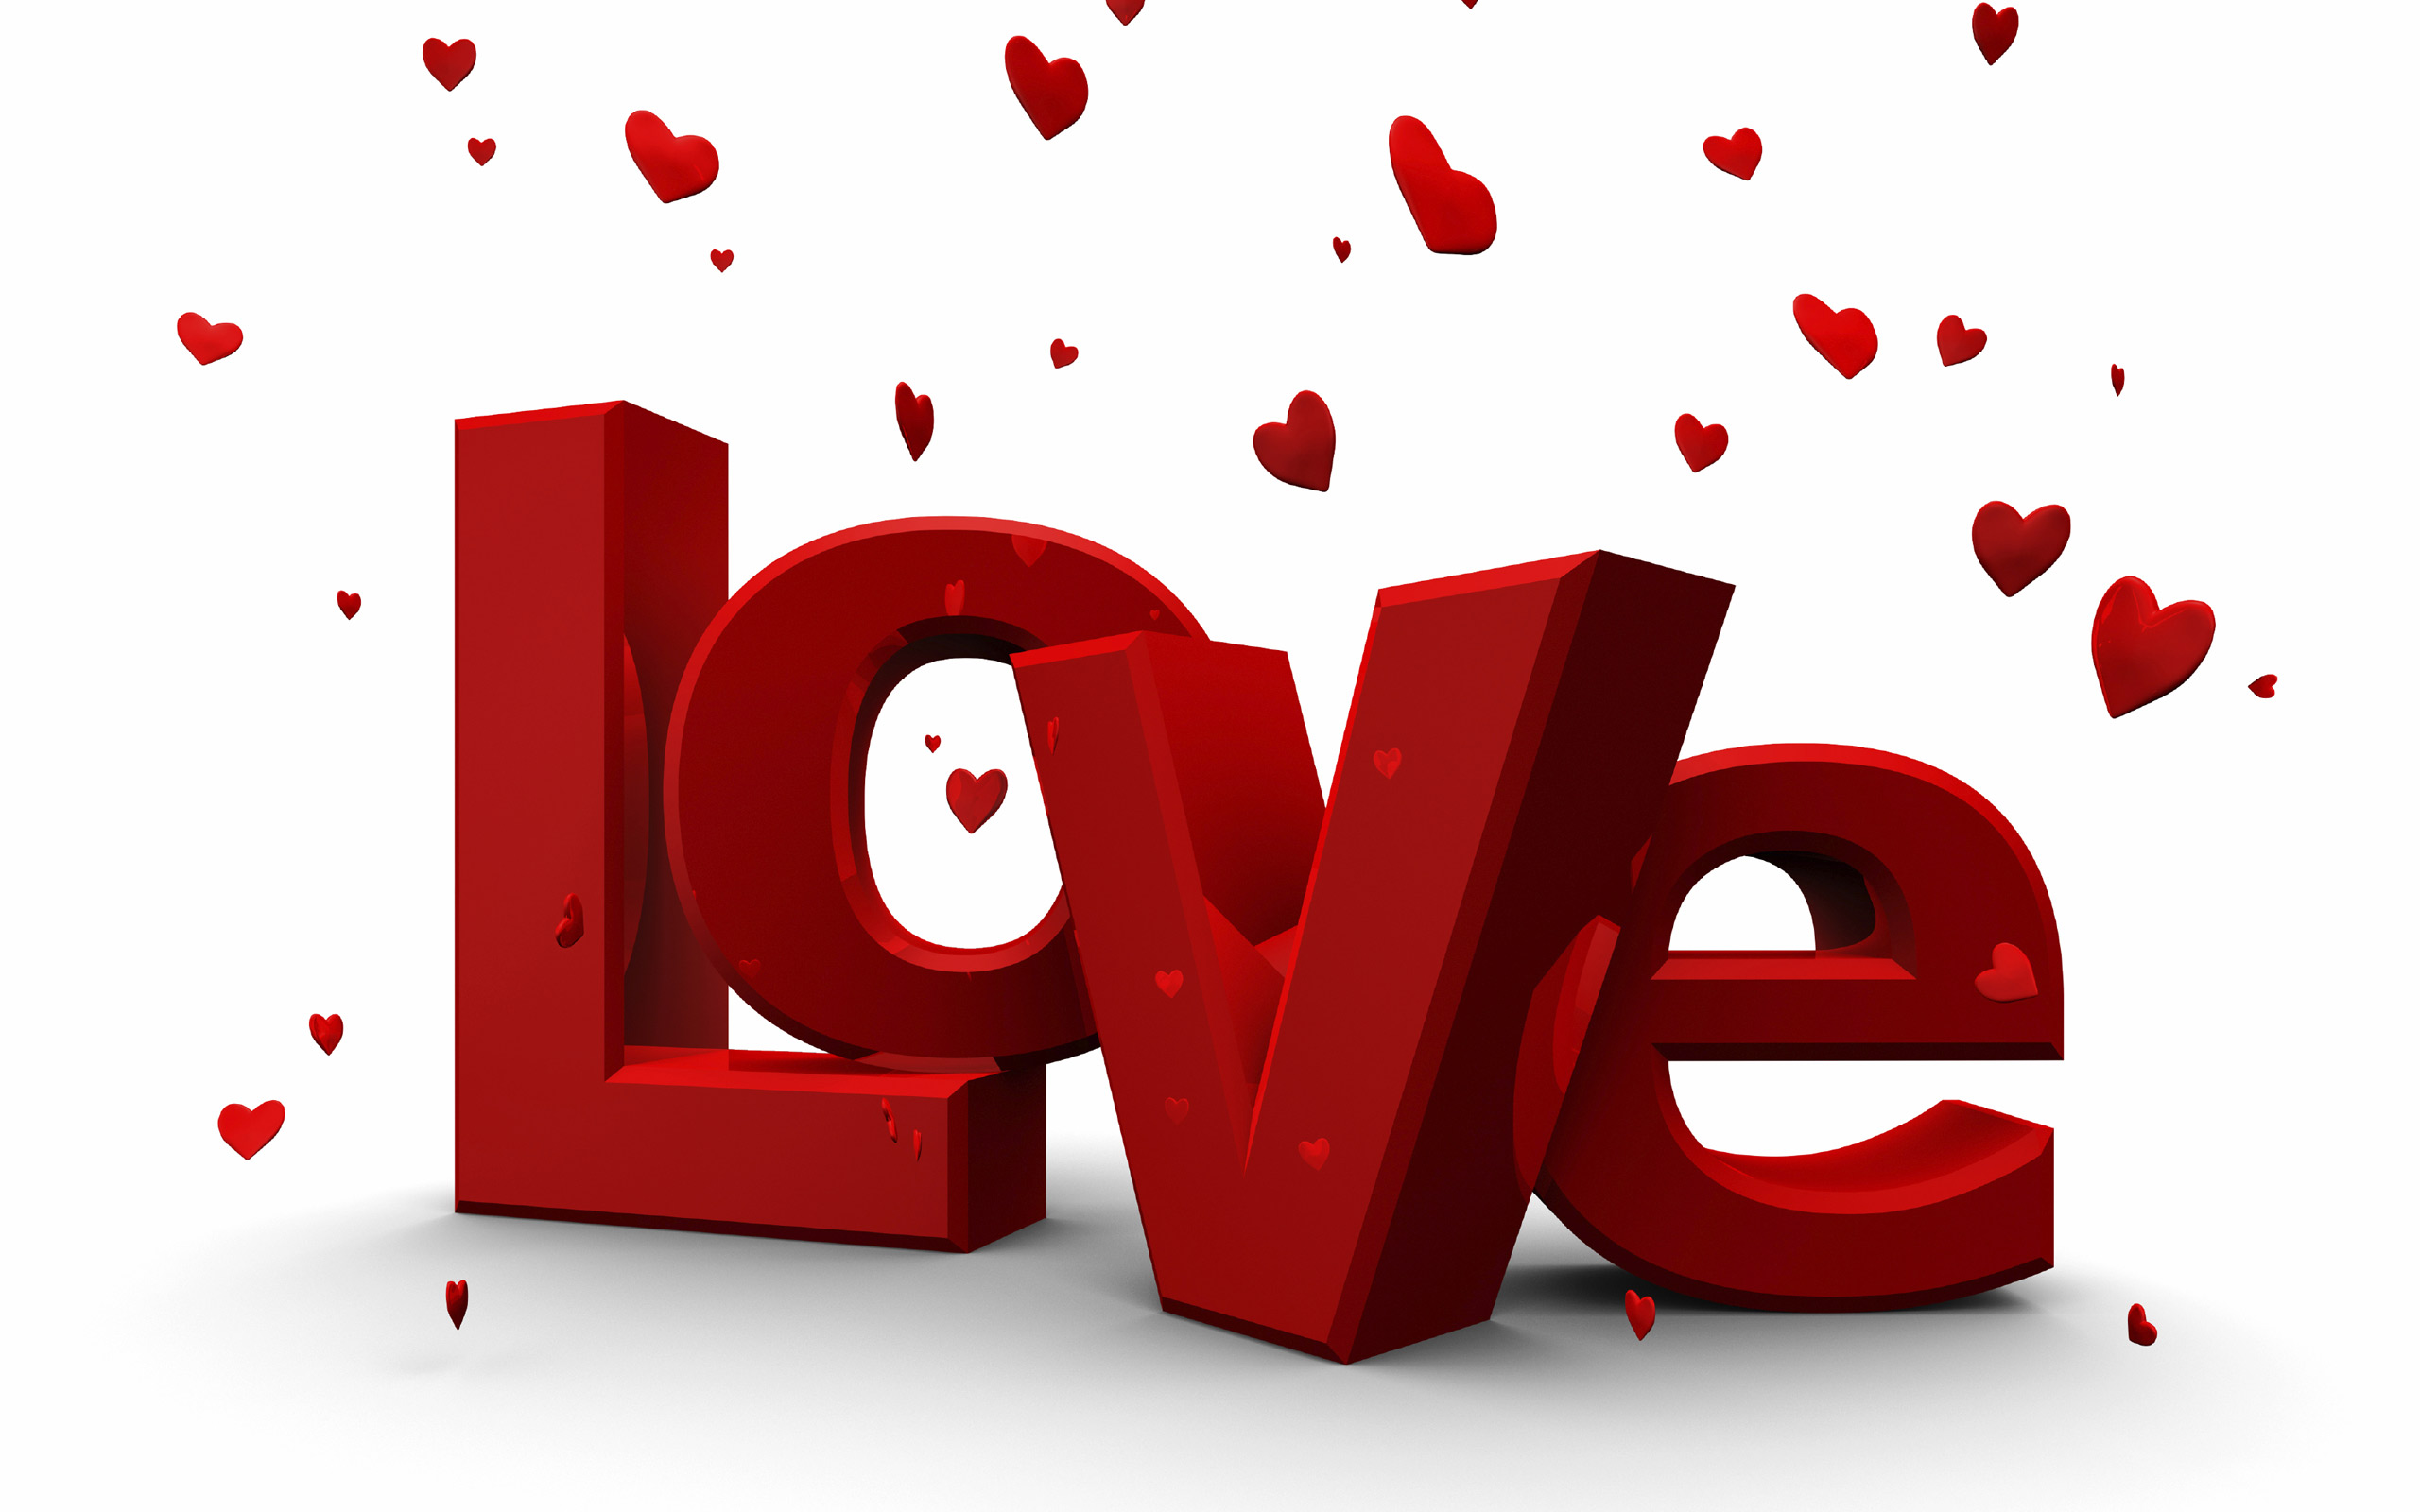 love sign | free desktop wallpapers for widescreen, hd and mobile